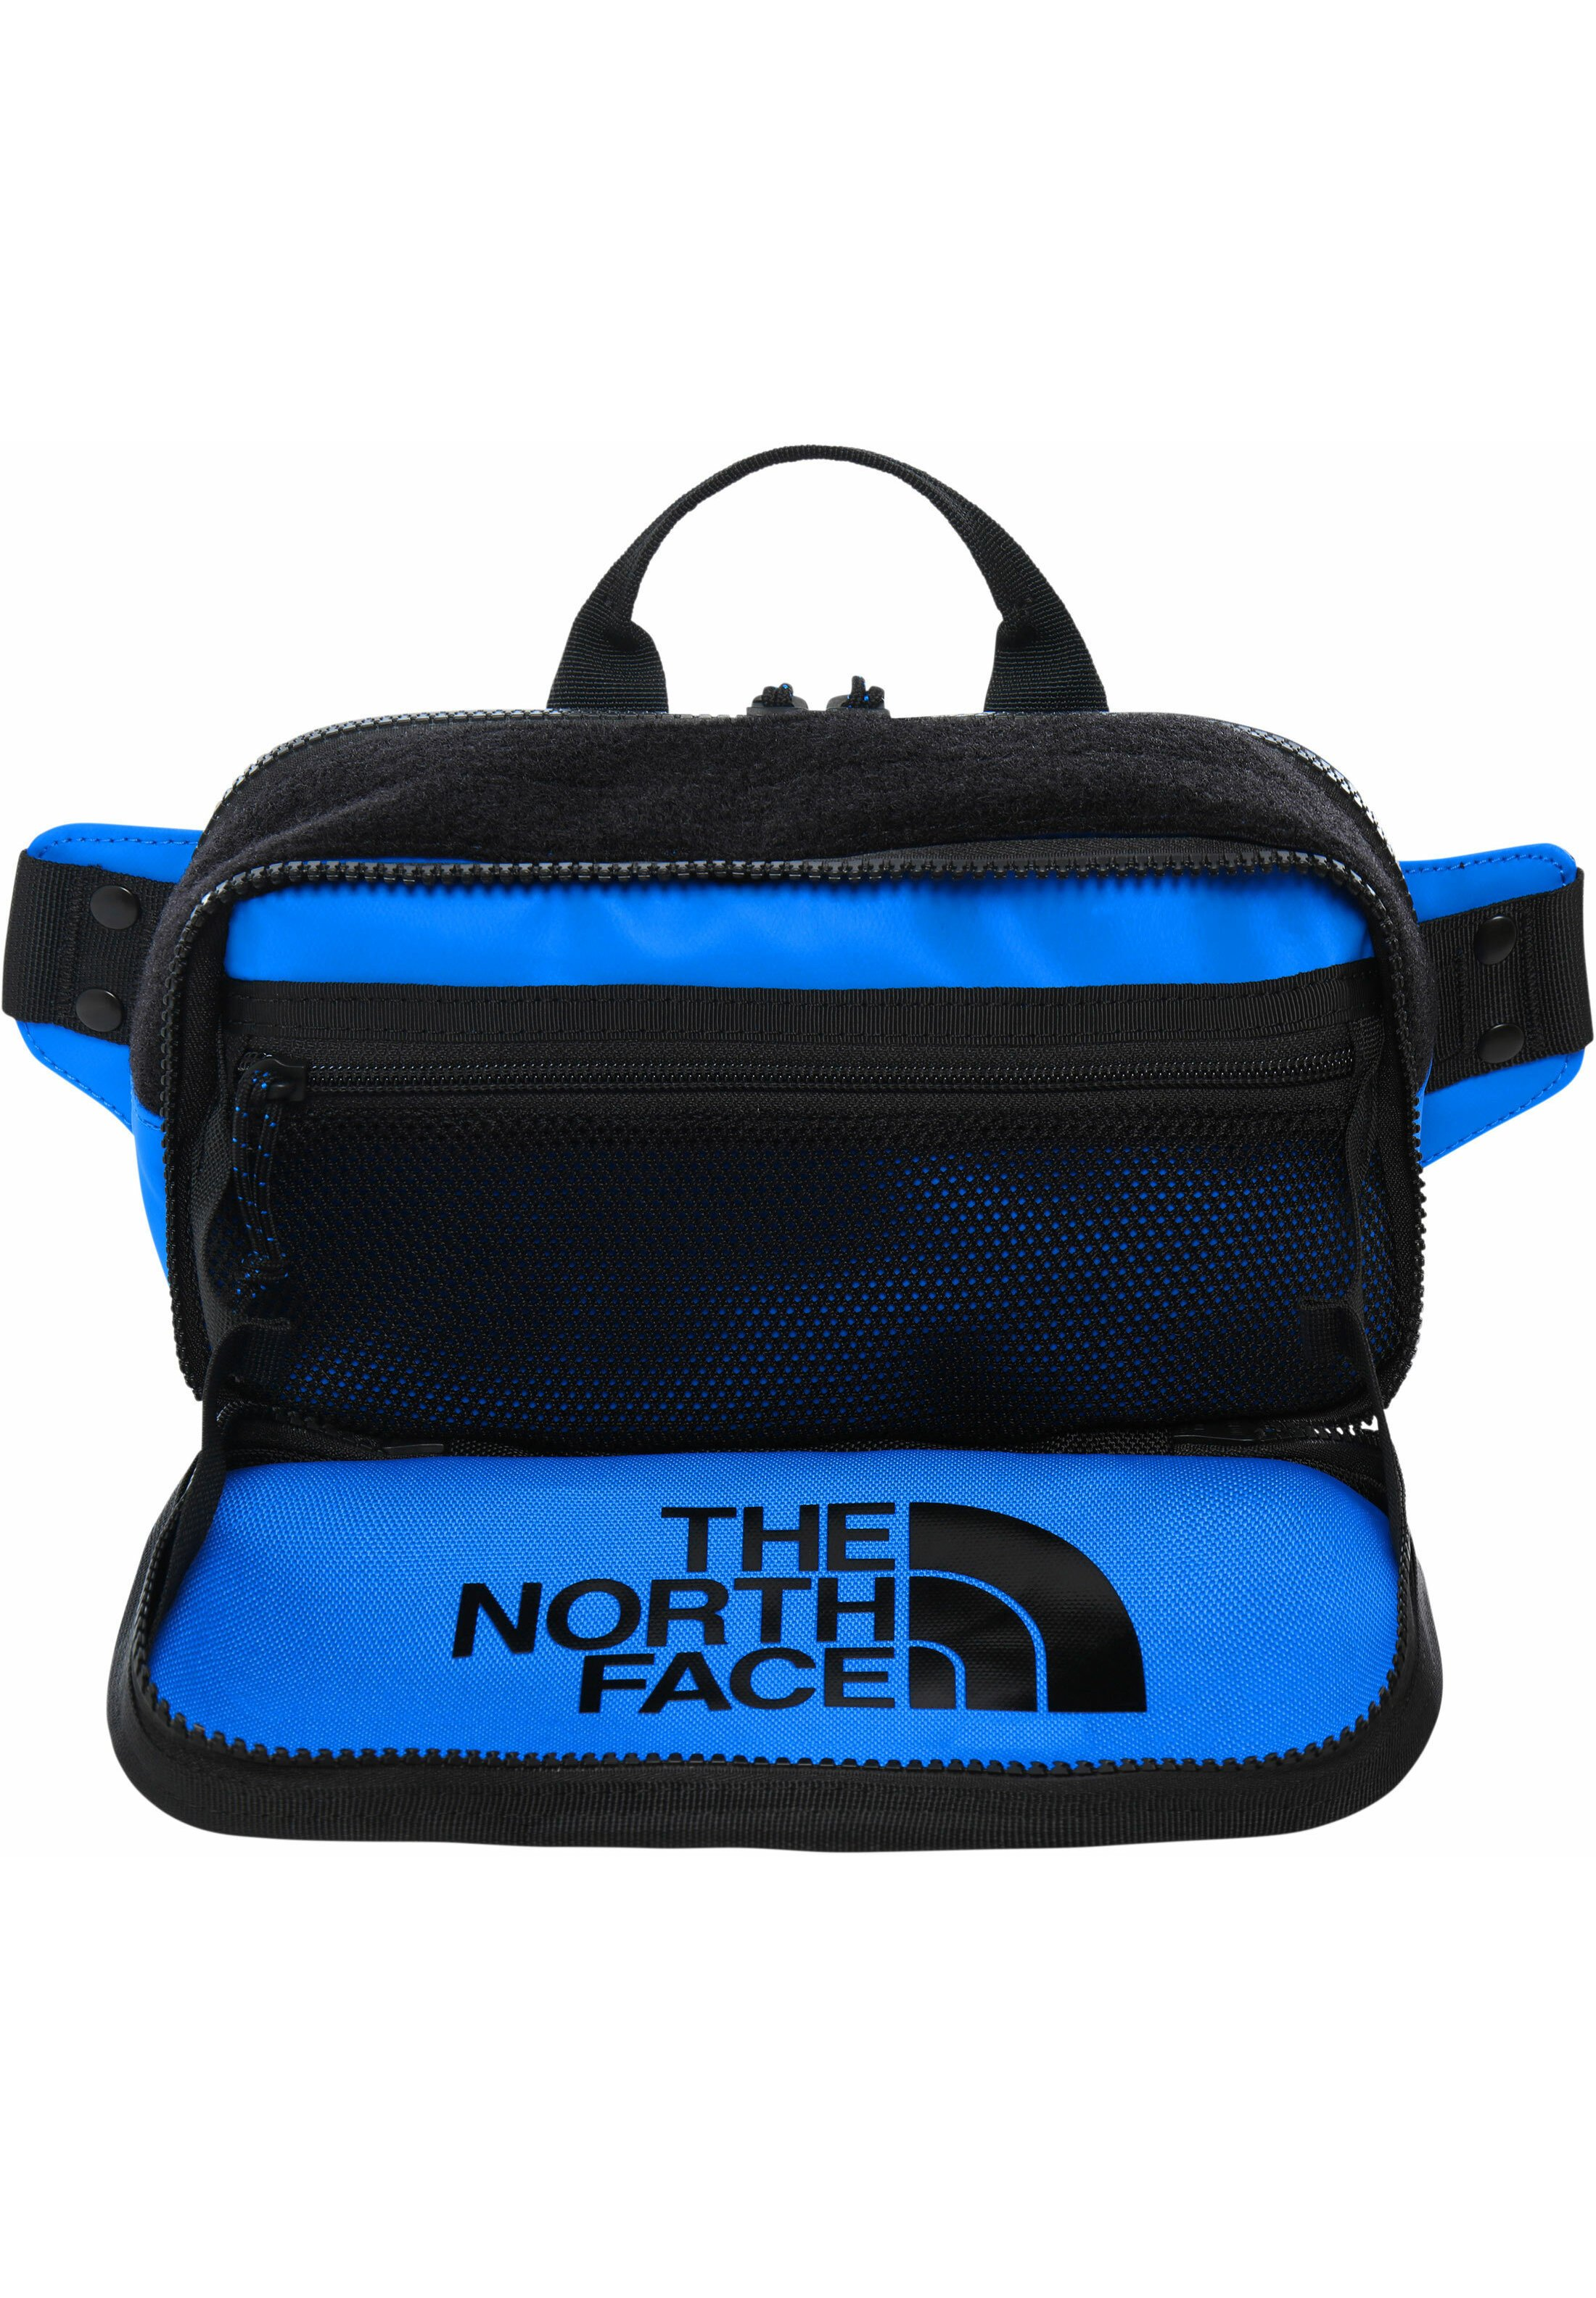 The North Face Gürteltasche Explore S - Sac Bandoulière Clear Lake/black